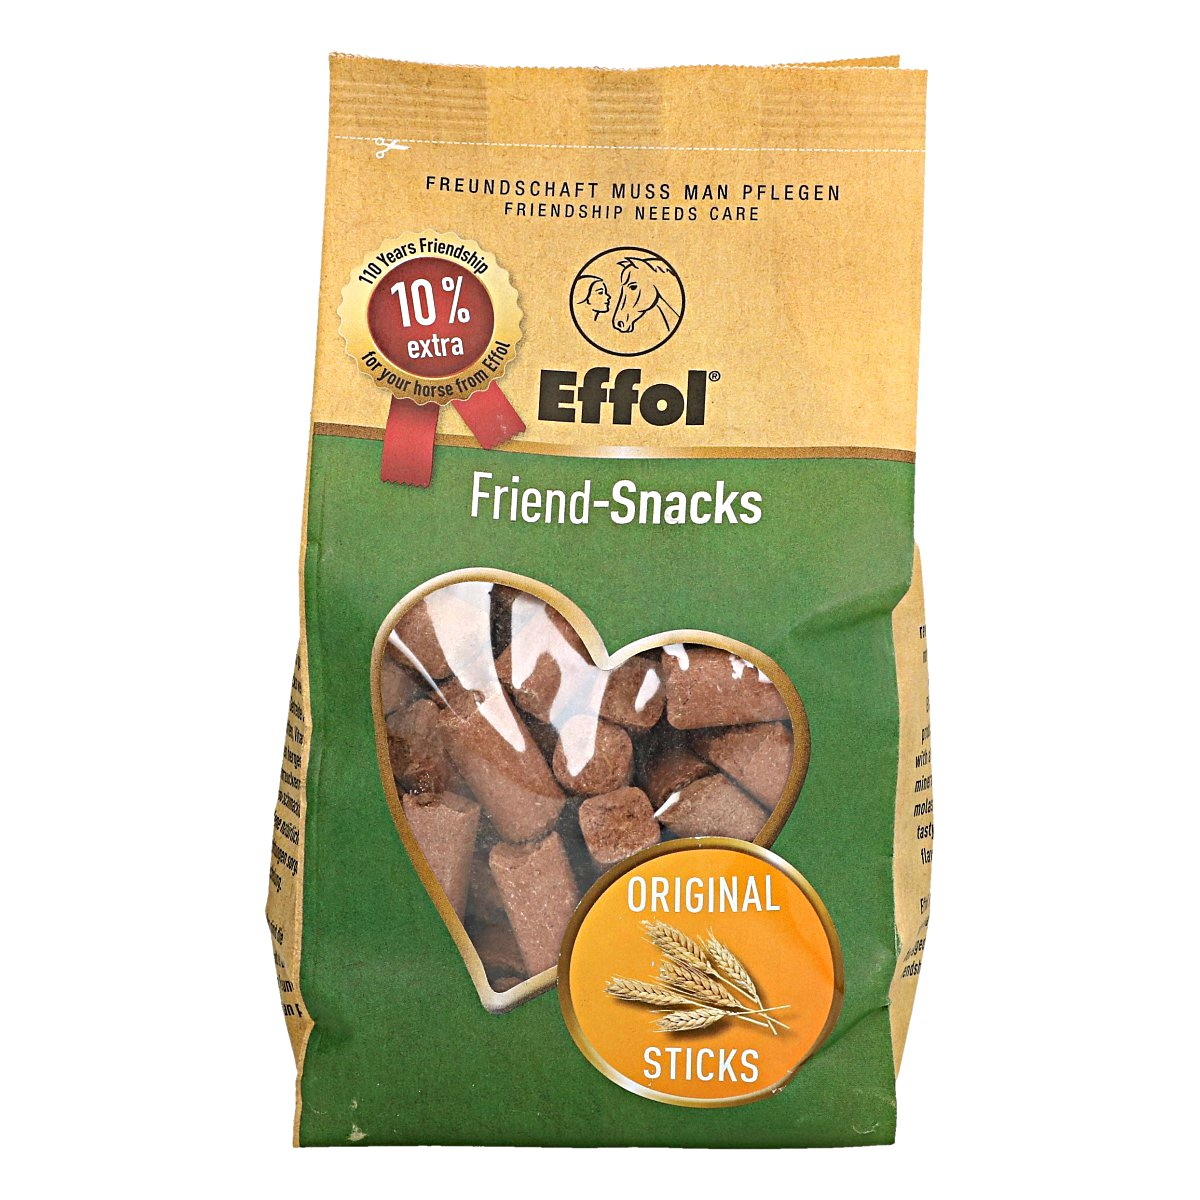 Imagem de Effol Friend snacks Original Sticks 1kg